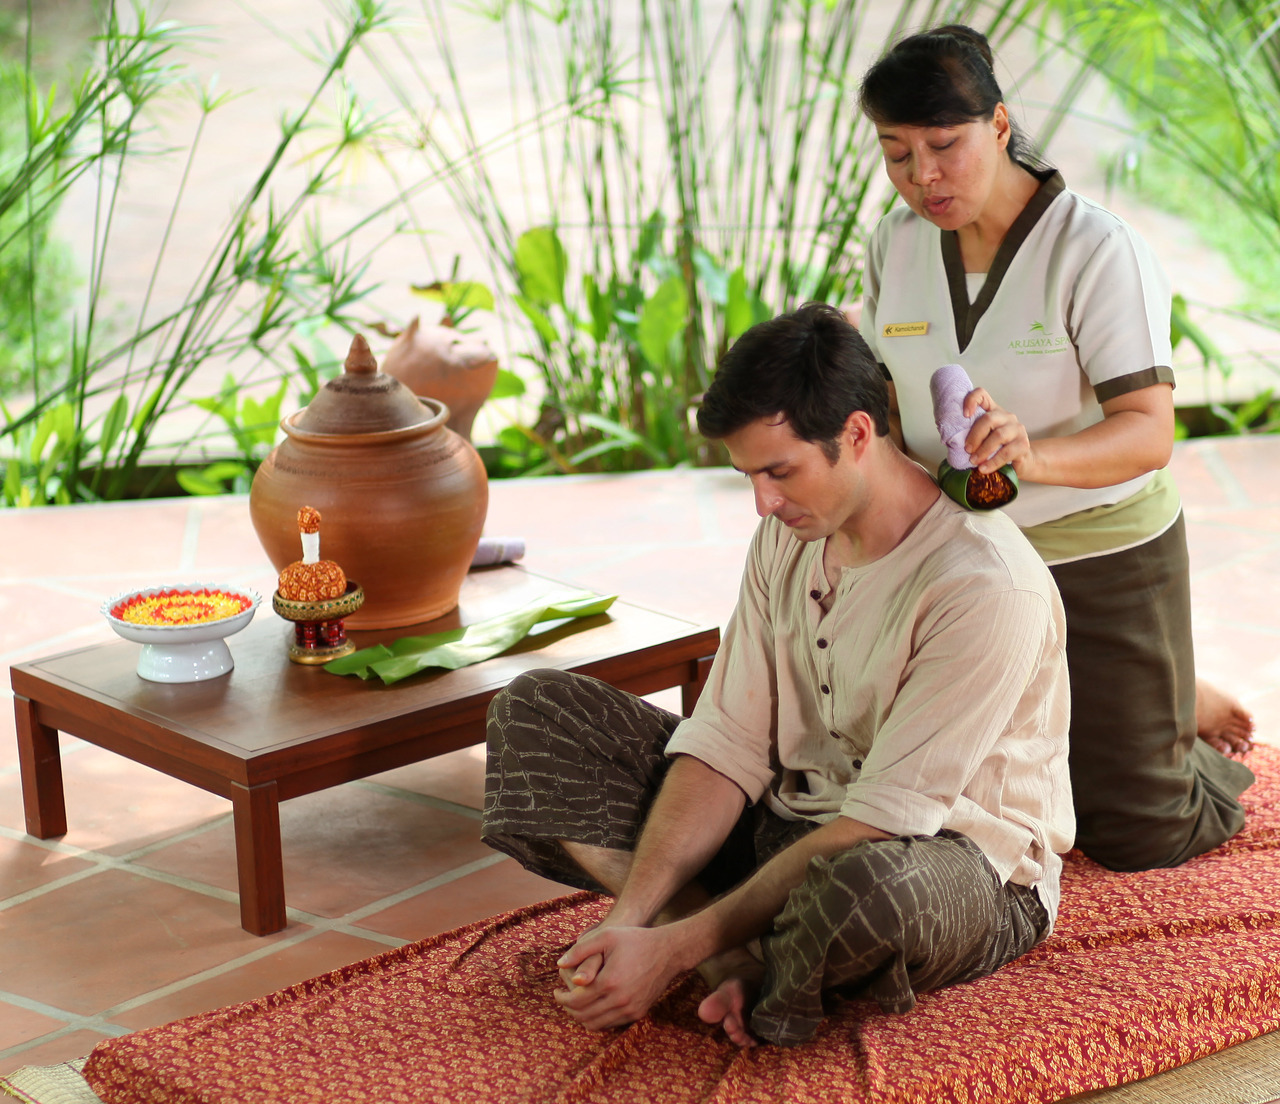 Thai Herbal Ball Massage helps you return from battle to get immediate responses to inflammation from wounds and injuries. It was also used for treating soreness and pain from tired, achy muscles and joints. Have you ever try it? and do you like it?